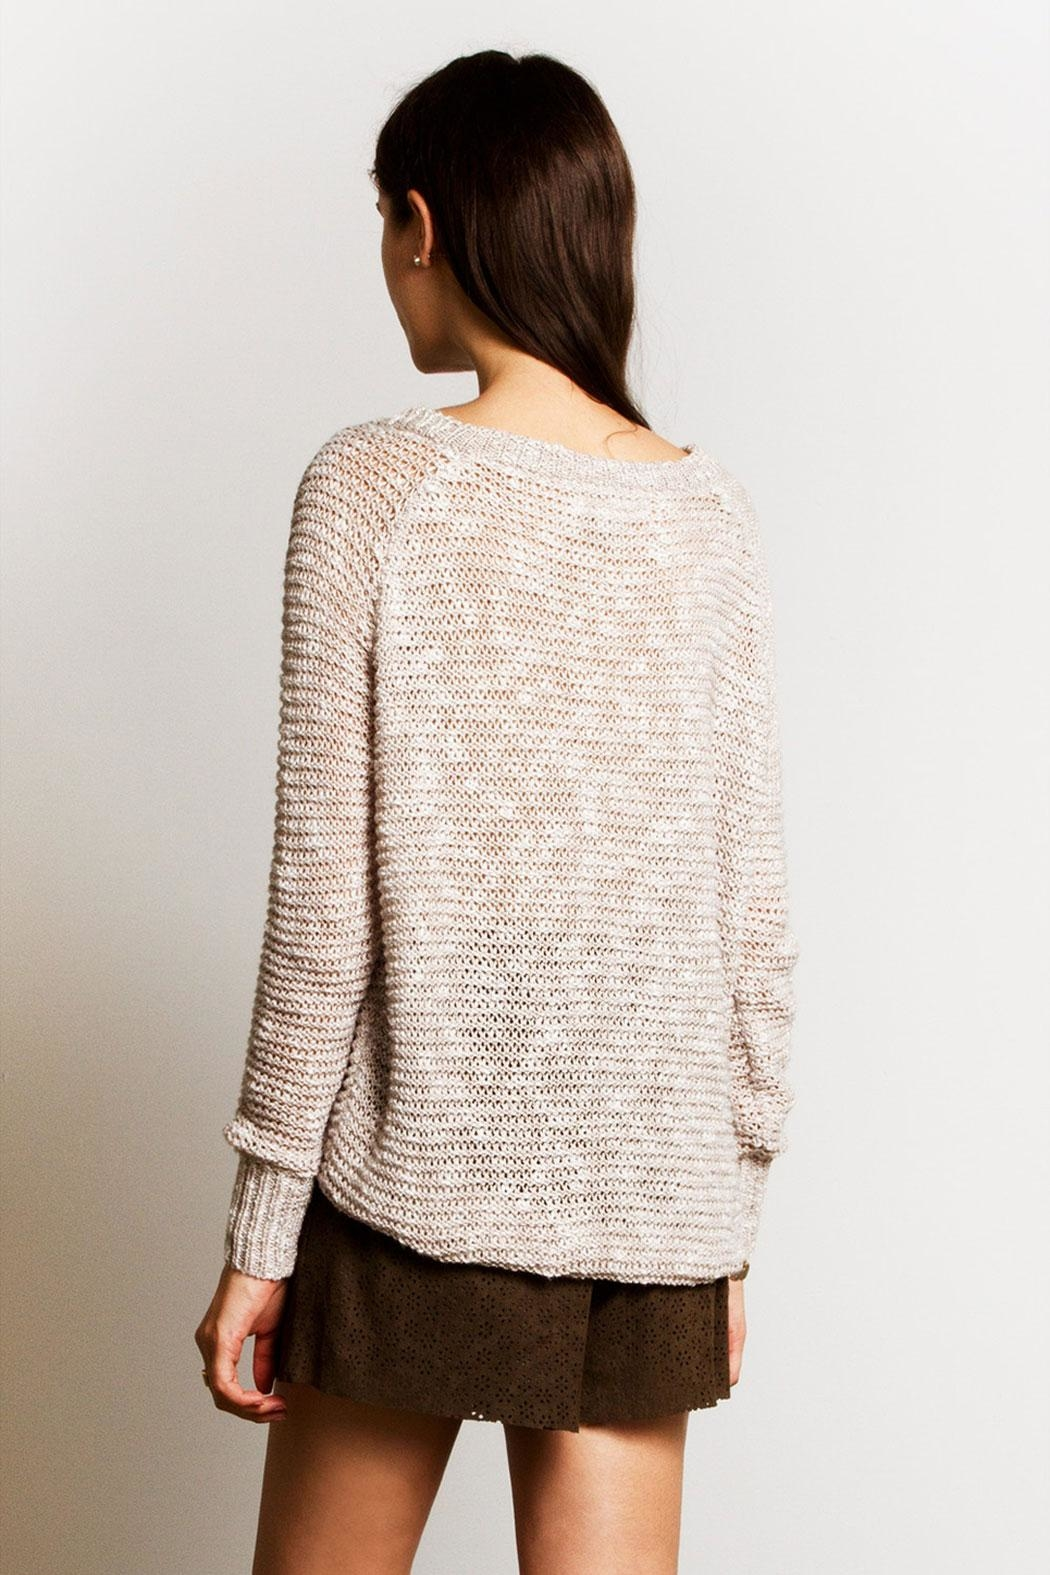 Sans Souci Jessica Crochet Sweater - Back Cropped Image